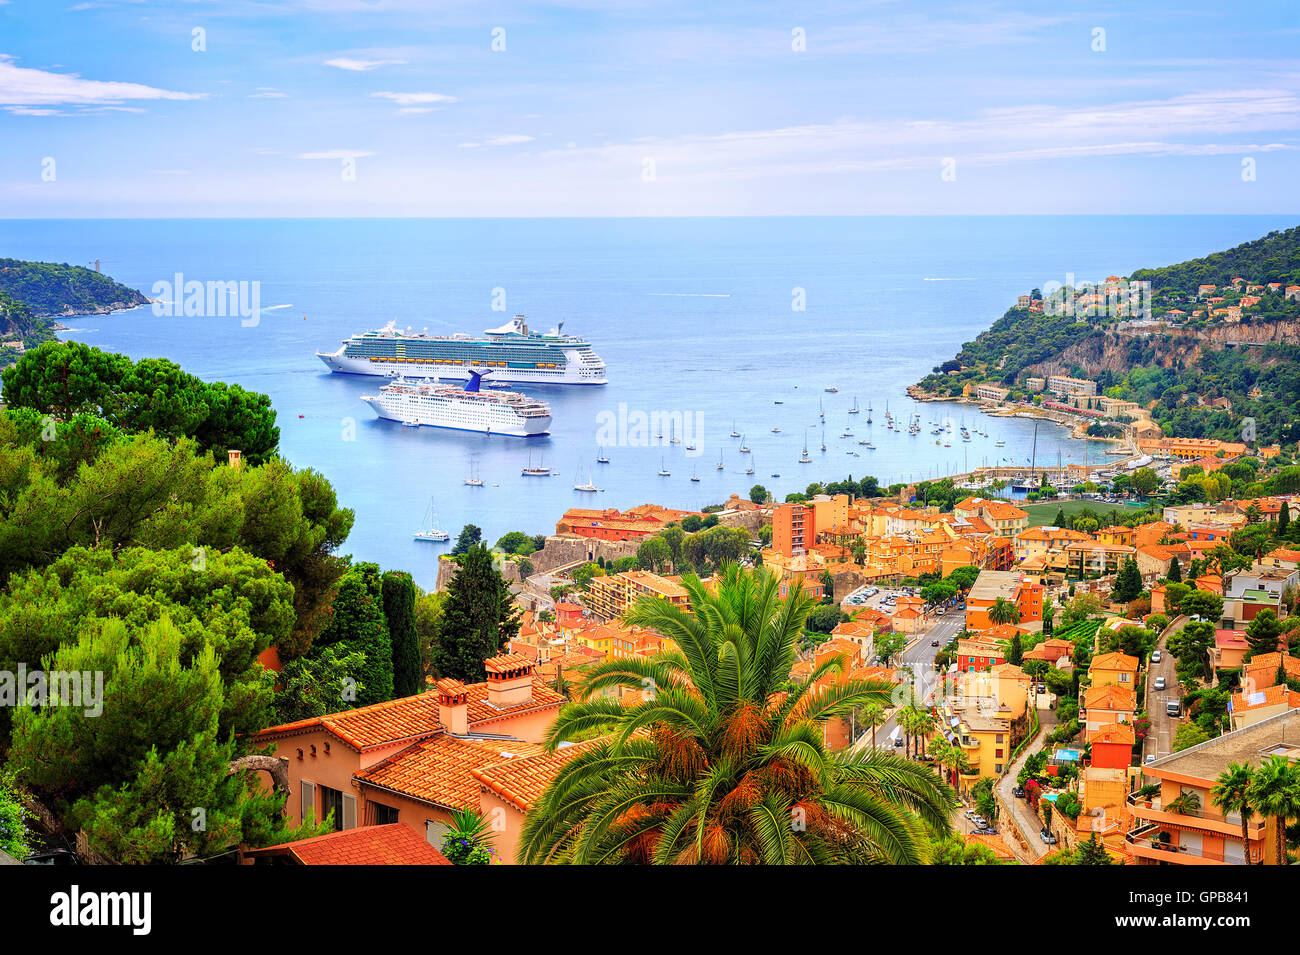 Cruising ships in a lagoon of Villefranche on french Riviera by Nice, France - Stock Image